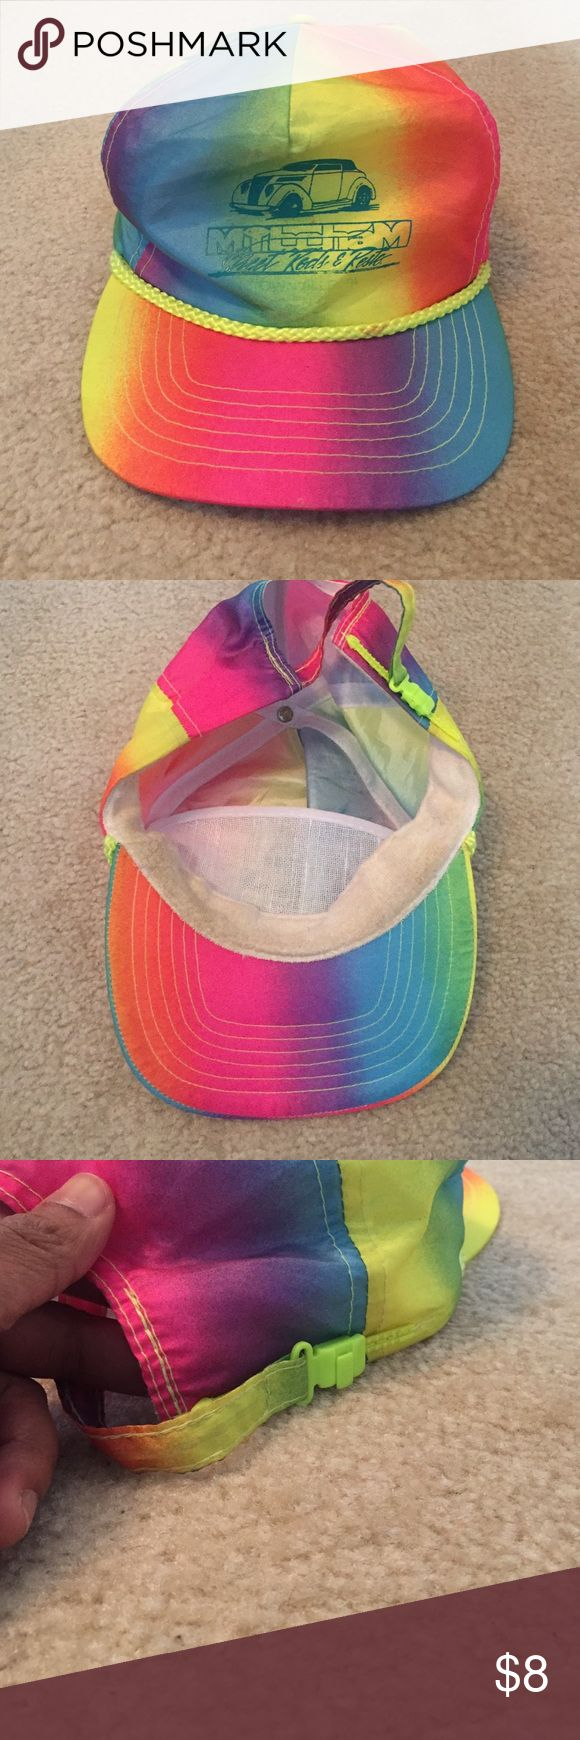 15% off all hat bundles!* Selling all of my hats! Bundle and save or price is firm! All of these hat are over 50% off. Degree of wear varies but all these hats are still in good shape. Any discoloration on the band is due to the makeup on my forehead. Selling my hats since they no longer fit well due to my preferred haircut.  *Supreme hat (if still available) is excluded from discount (order cancelled + blocked). Feel free to bundle and save on shipping though! Otto cap Accessories Hats